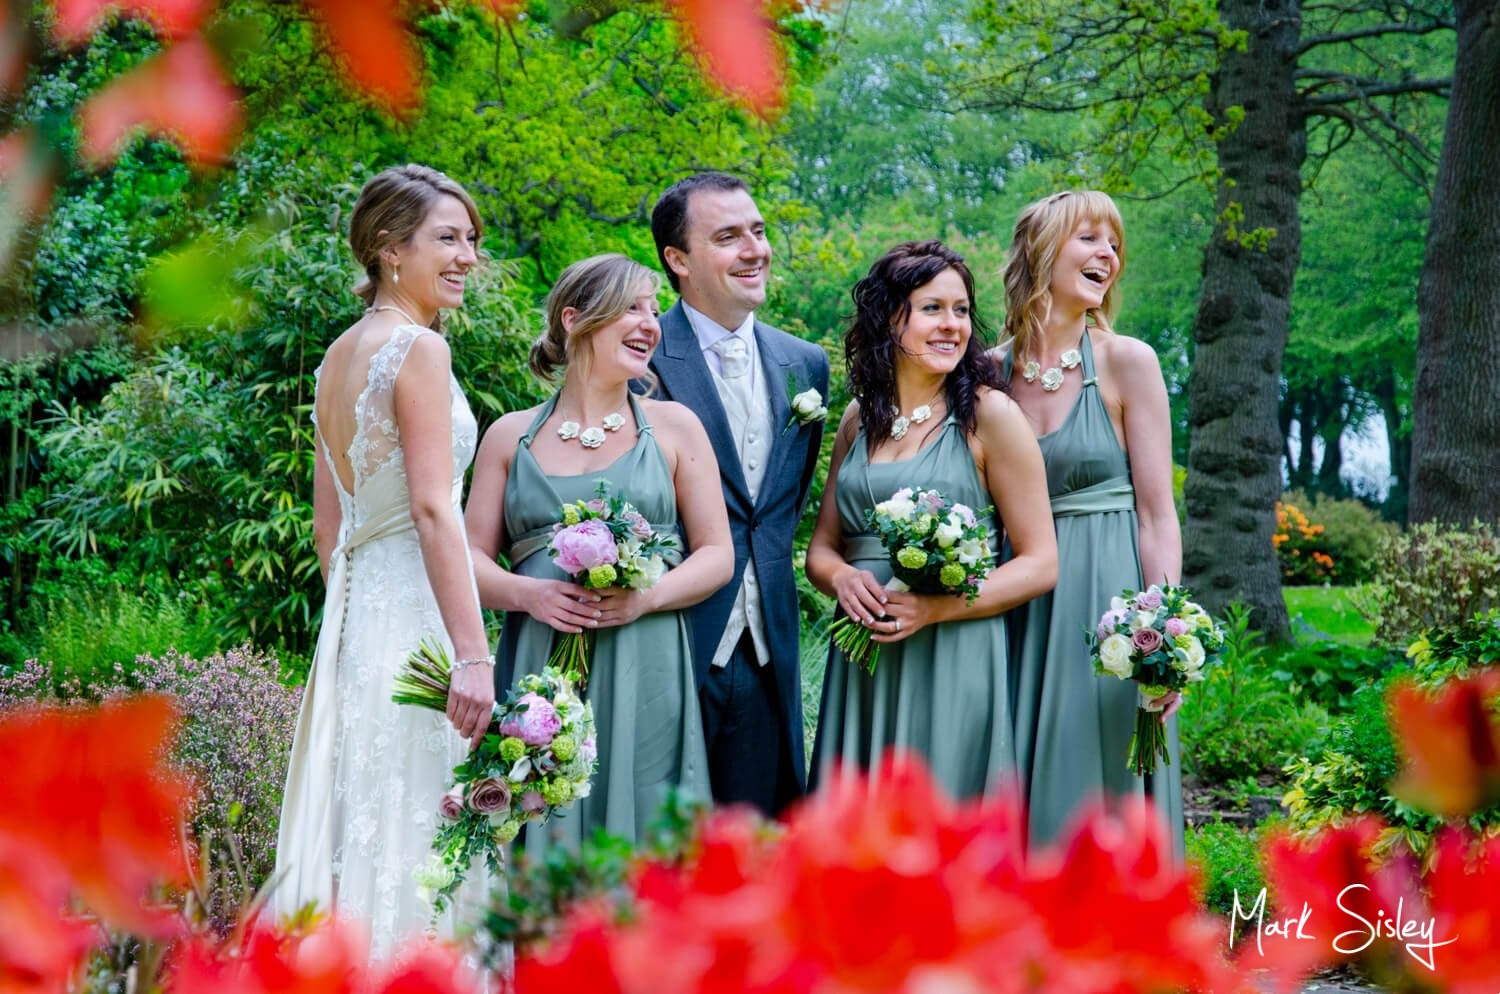 Choosing a wedding photographer - through the flowers for a wedding pose